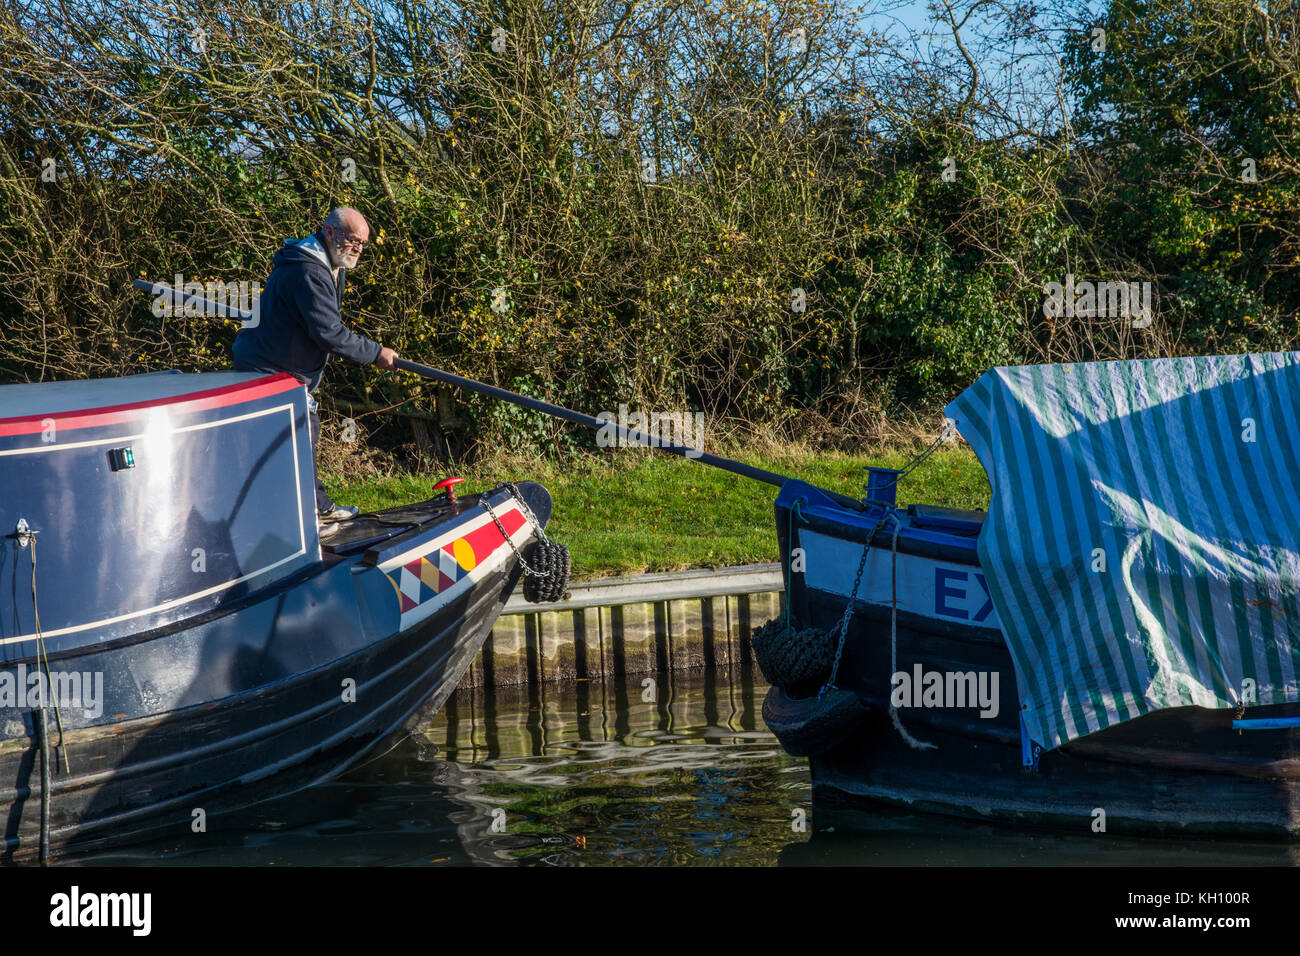 Grand Union Canal, Marsworth, UK. 12th November 2017. The fore mooring rope of the unmanned narrow boat Exe broke - Stock Image